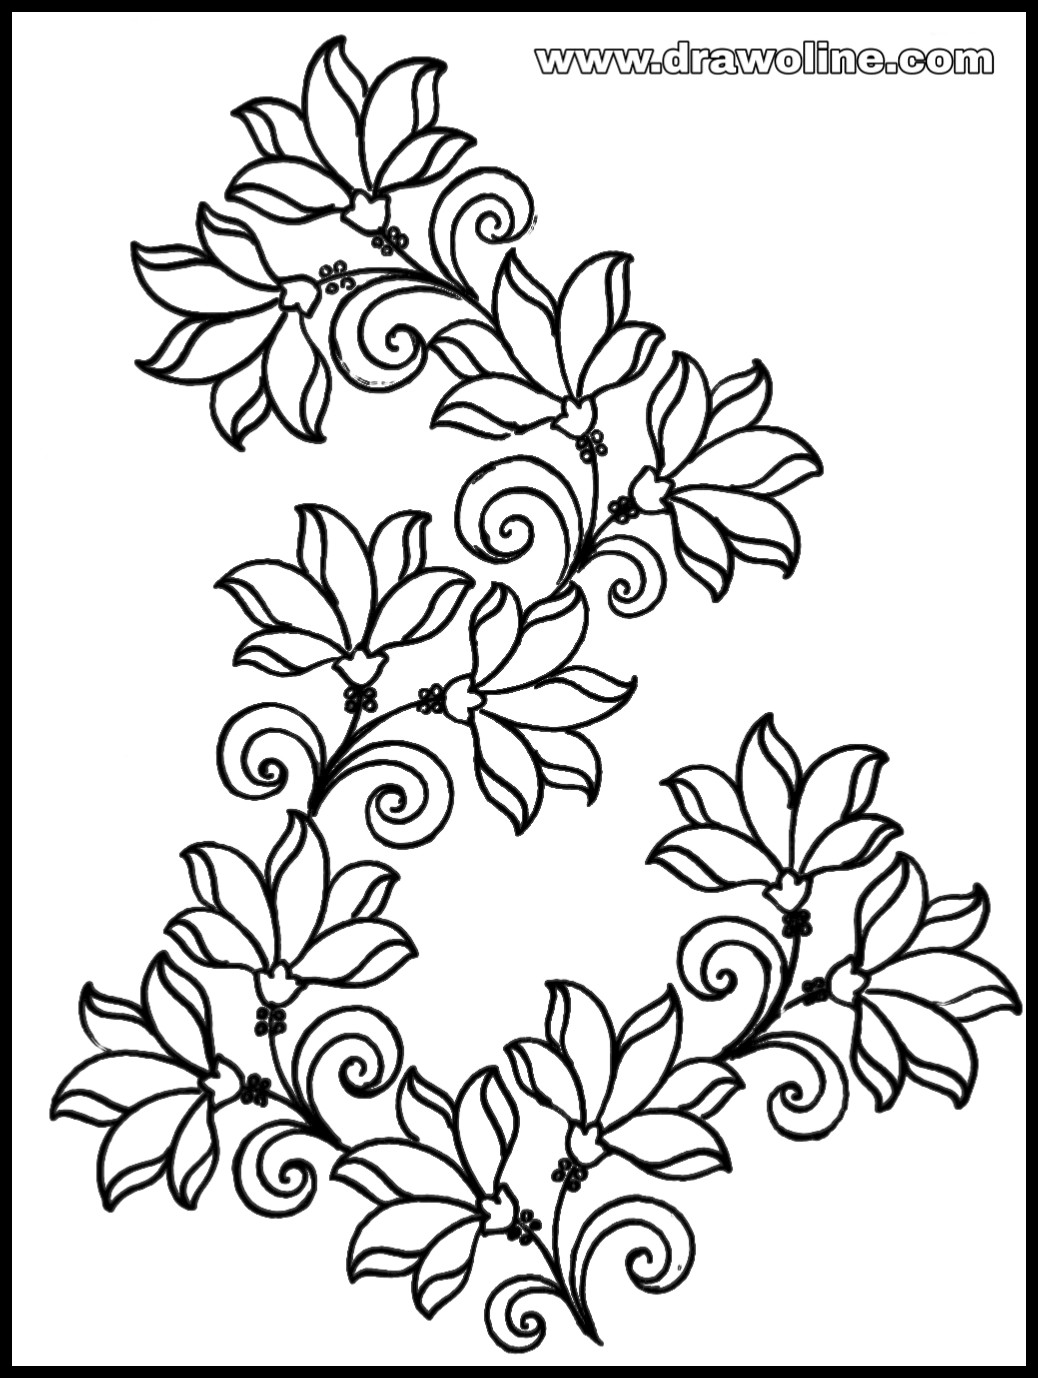 Top 3 New Embroidery Flower Design Sketch Embroidery Designs Outline Patterns,1920s Interior Design Australia